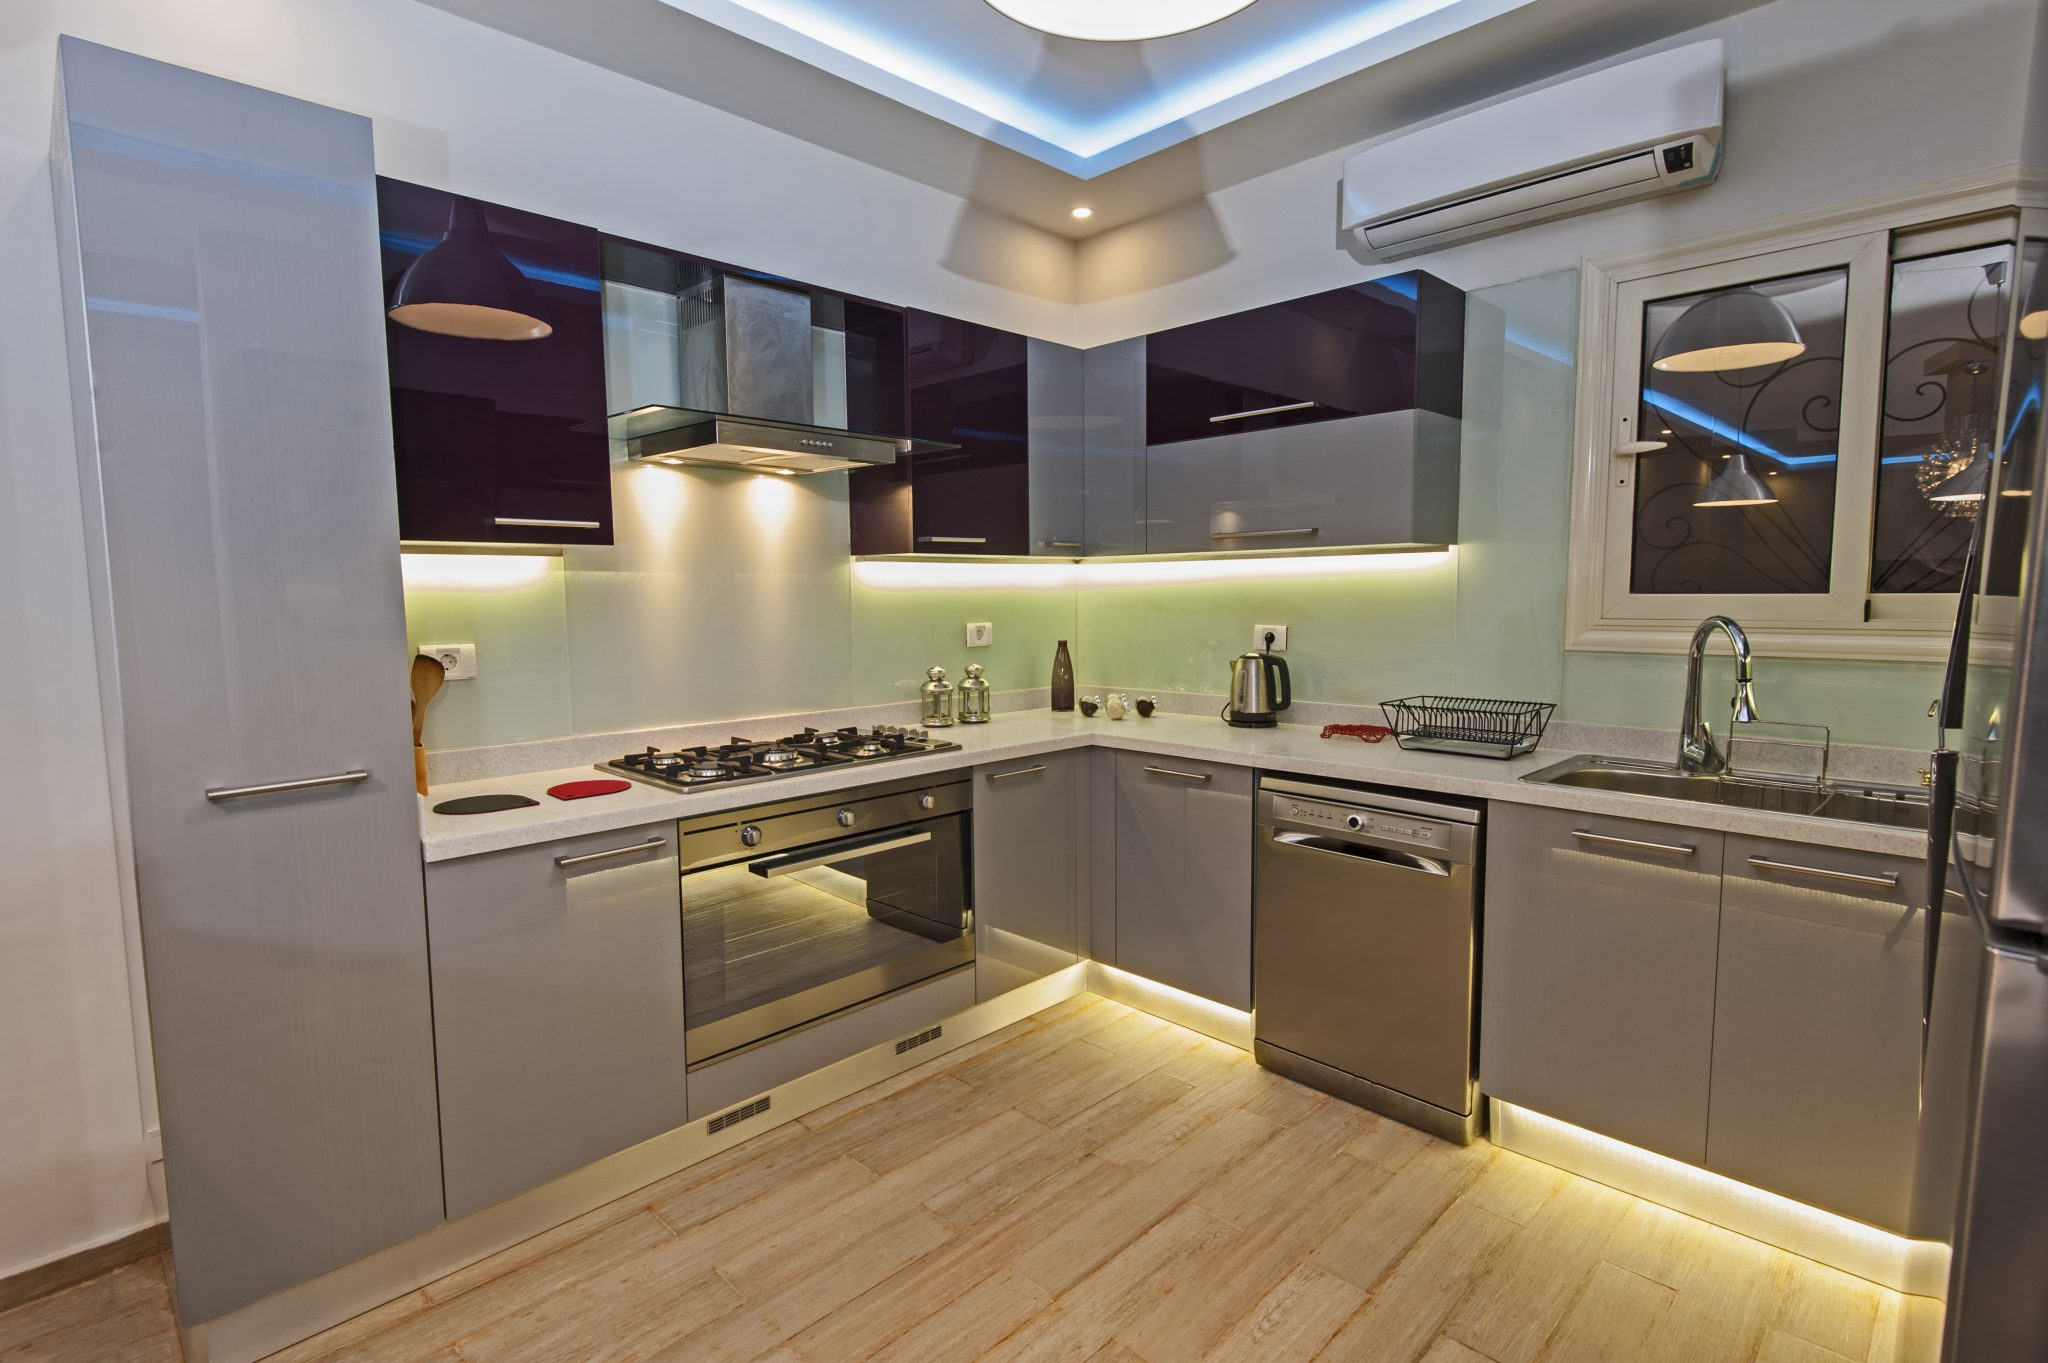 Refinance Kitchen Showroom Fit-out